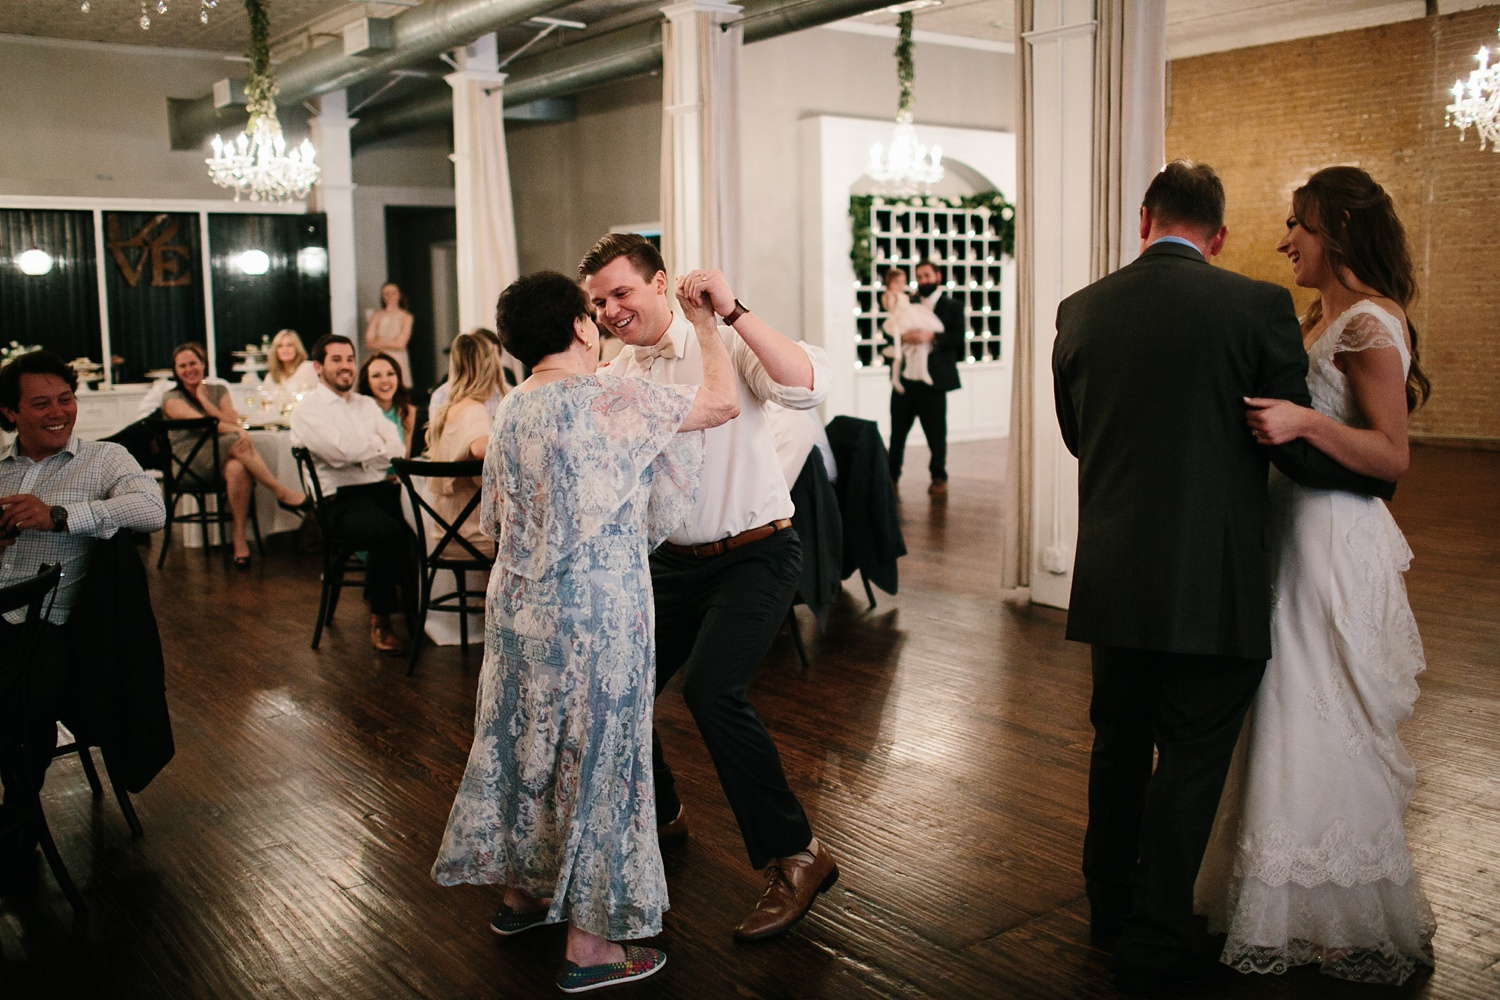 Amber + Daniel an intimate, simple, spring ceremony at Heard Craig Center and reception at Gather in McKinney, Texas by North Texas Wedding Photographer Rachel Meagan Photography 129